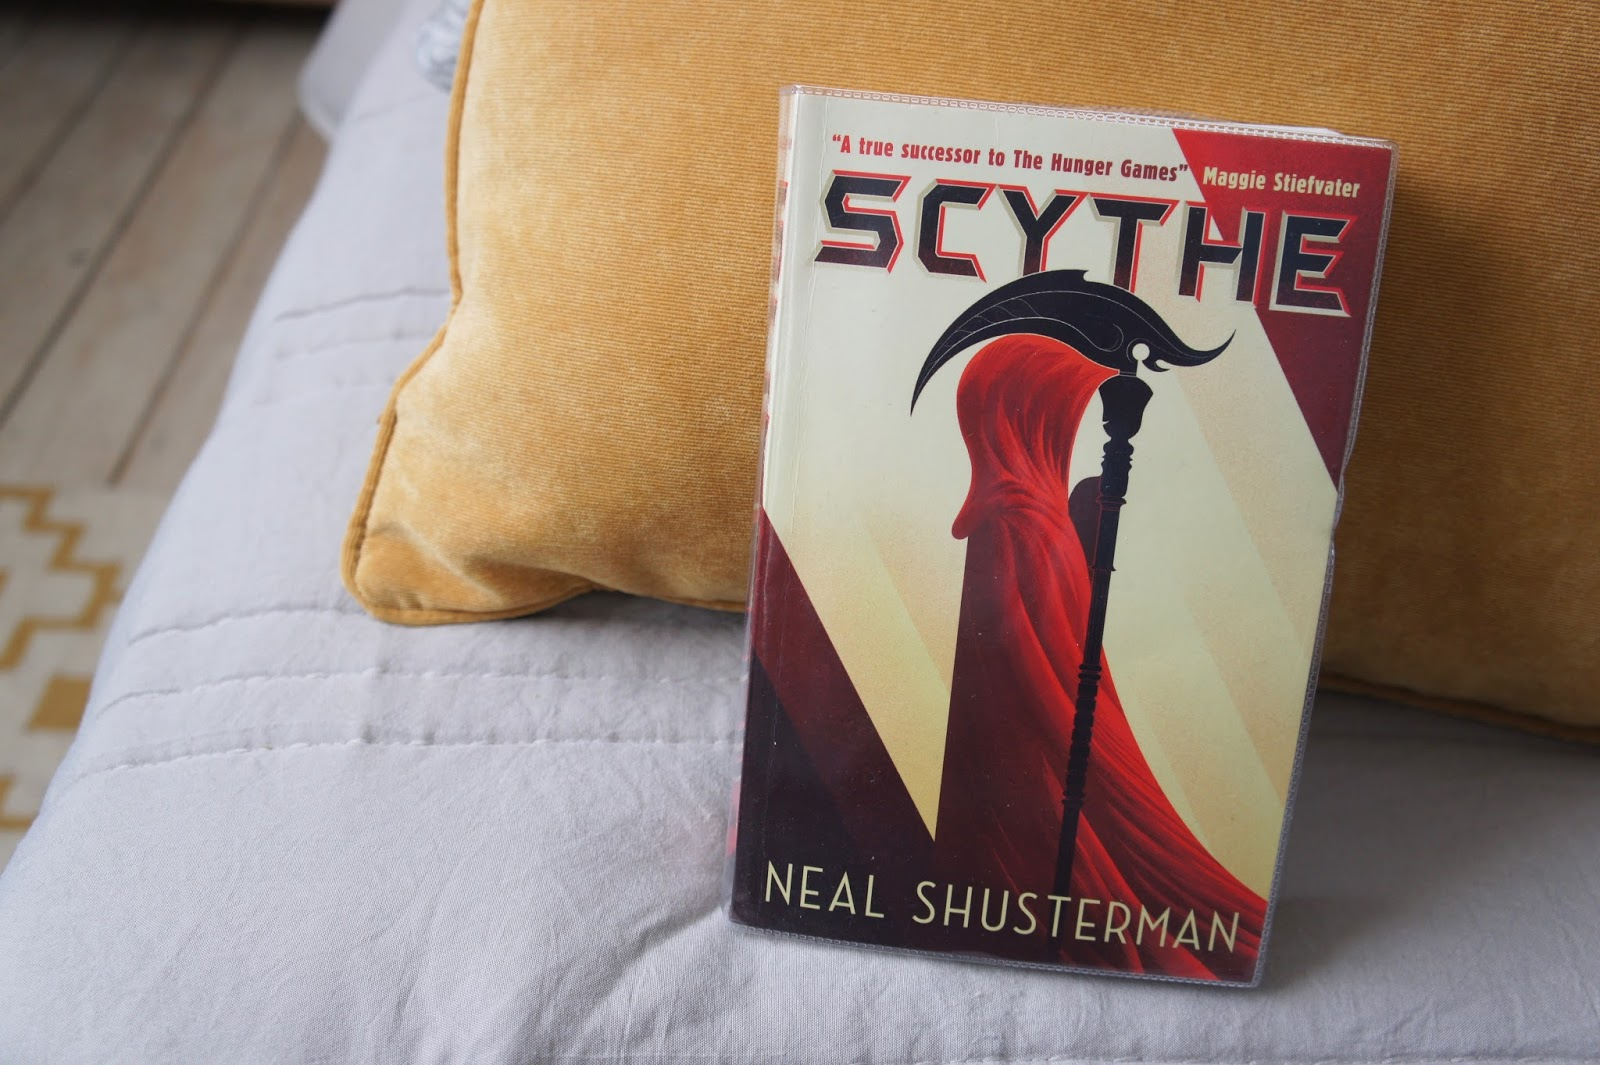 scythe neal shusterman review blogger's bookshelf